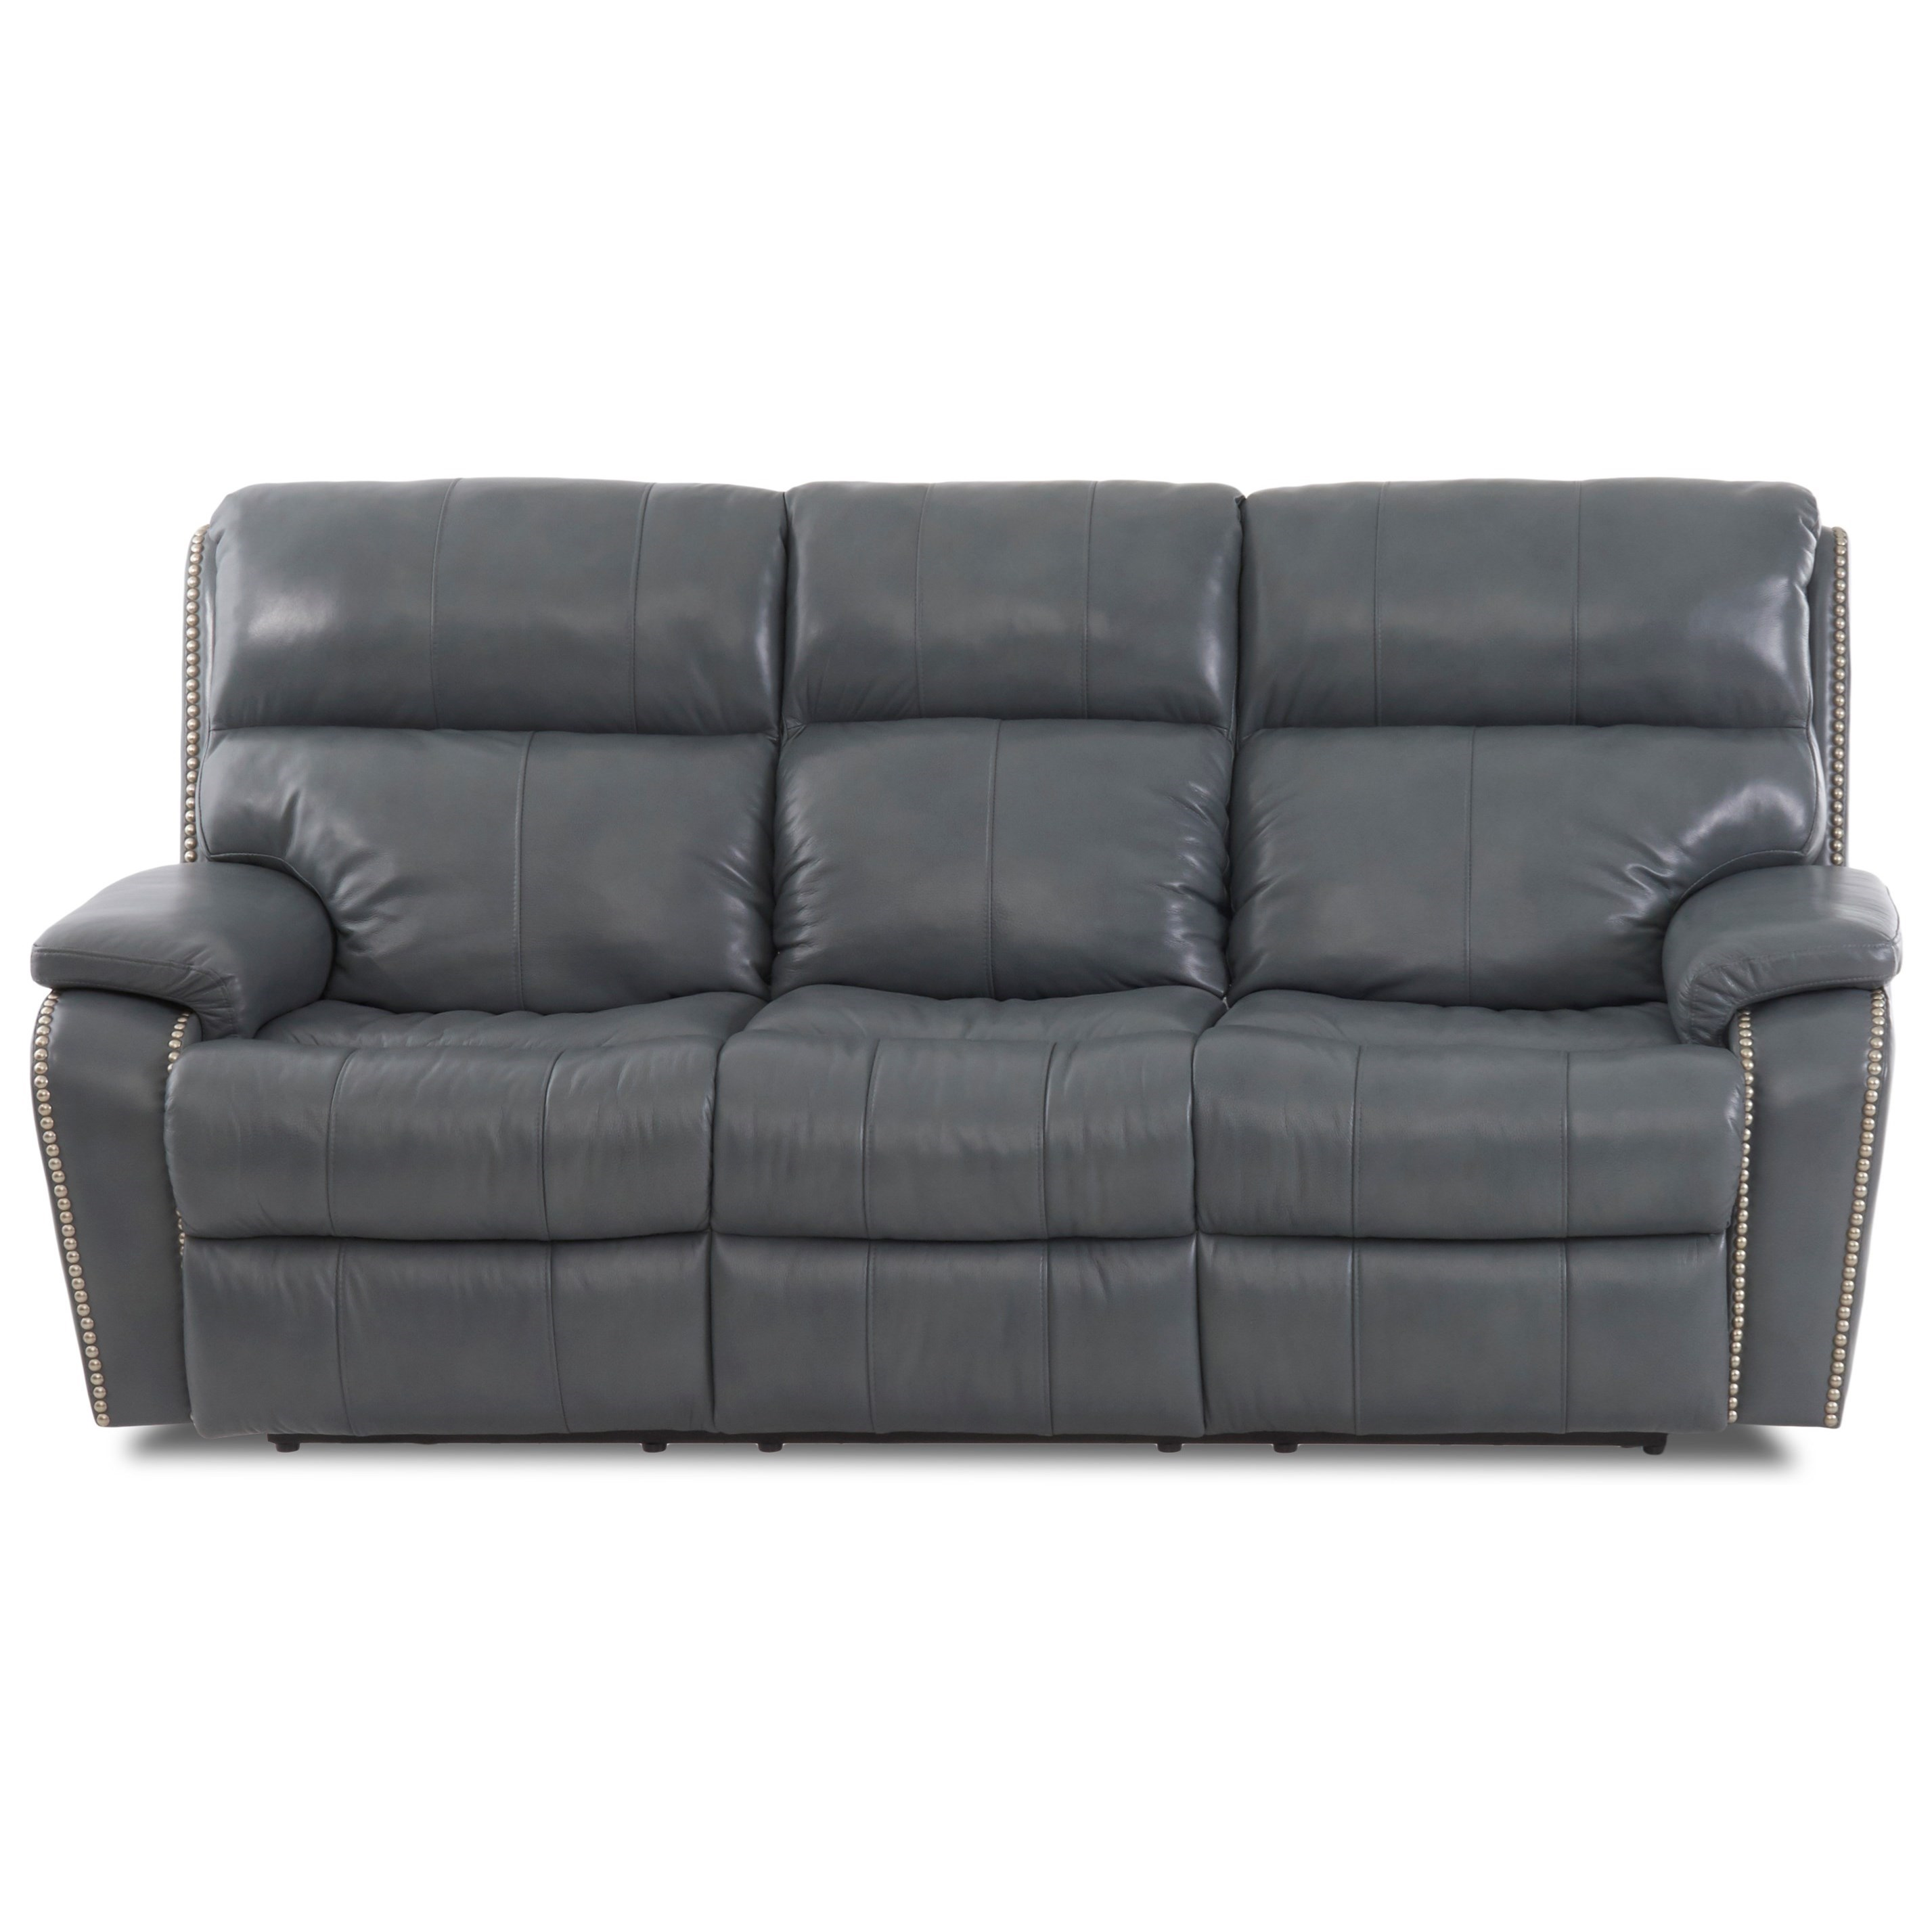 Casual Power Reclining Sofa with Nails, Power Headrests & Lumbar, USB Charging Ports